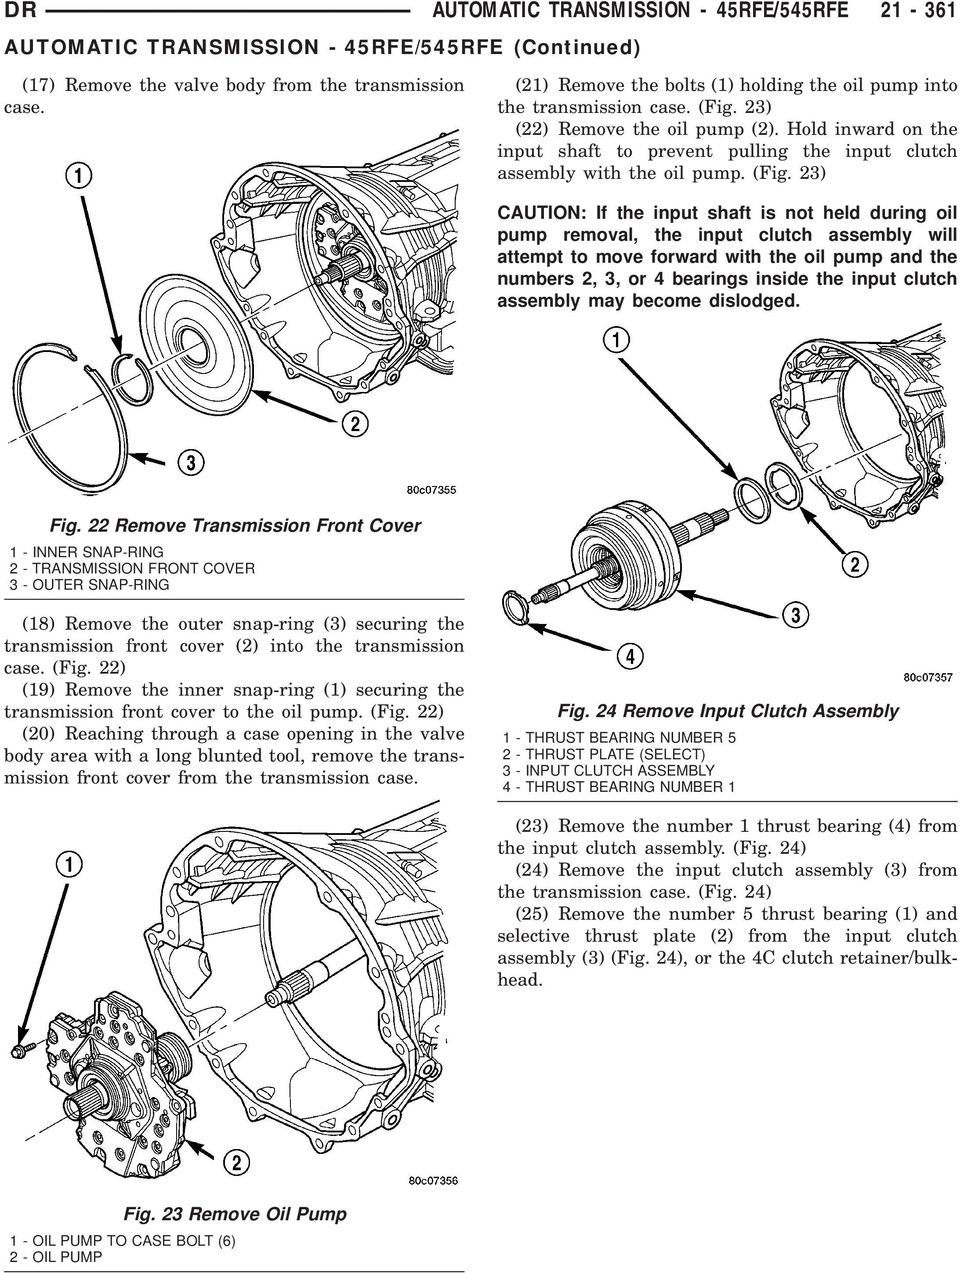 Automatic Transmission 45rfe 545rfe Pdf Manual Clutch Diagram Auto Repair Hold Inward On The Input Shaft To Prevent Pulling Assembly With Oil 13